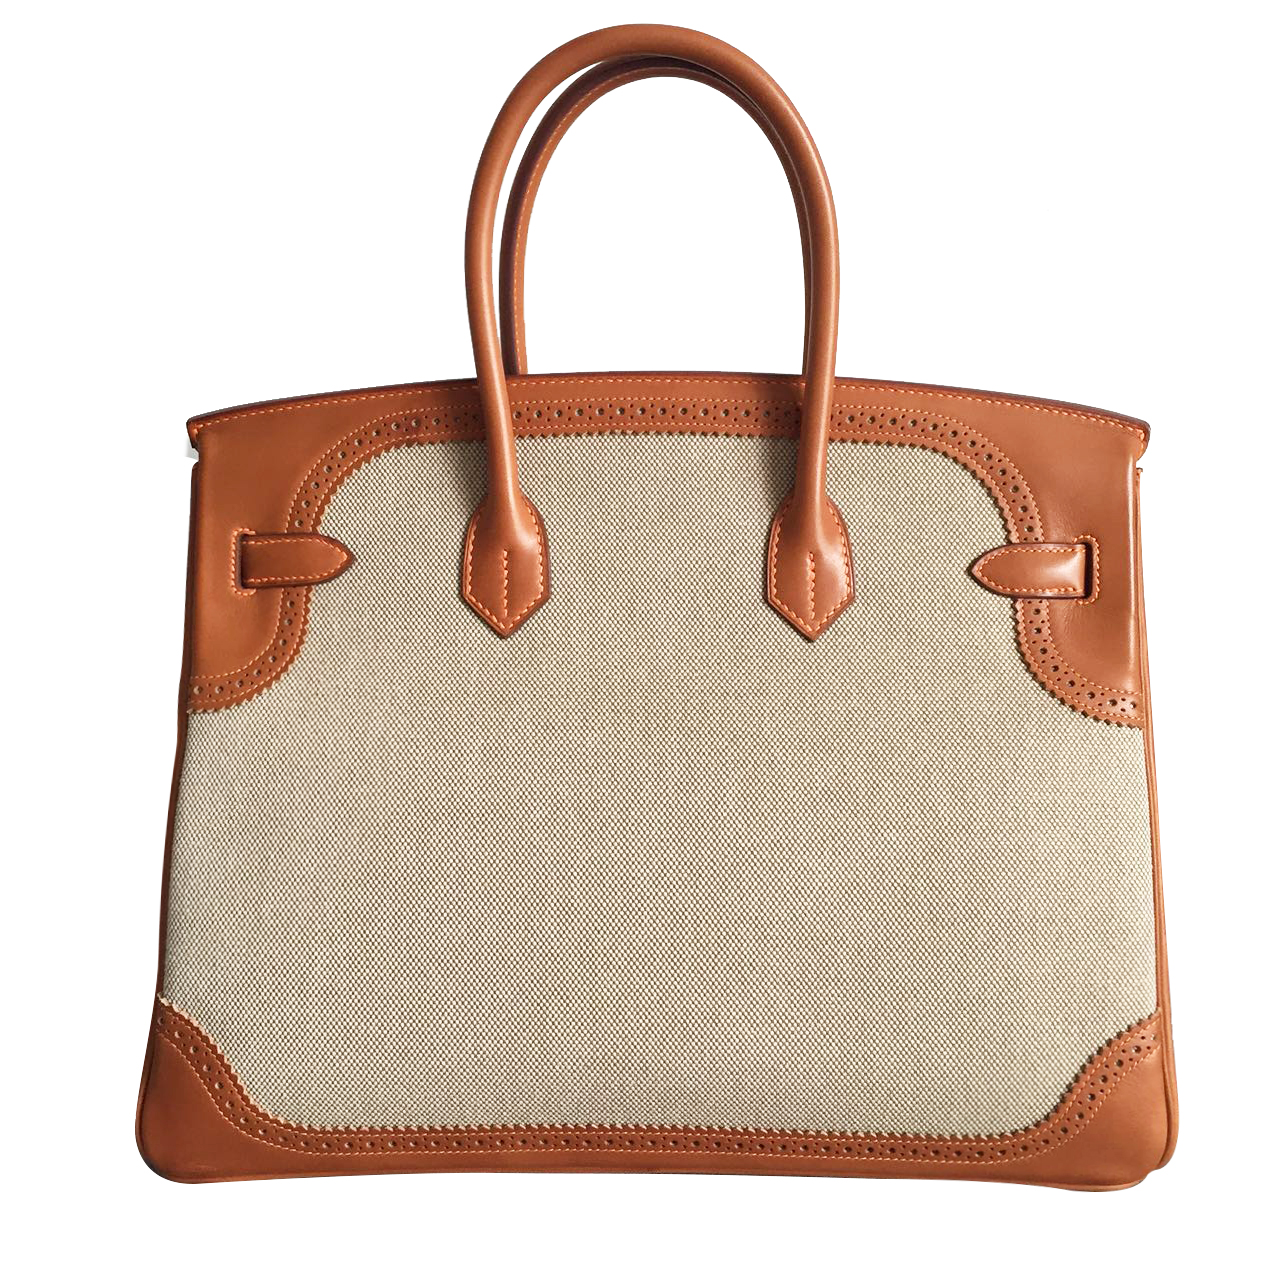 Worldwide shipping and secure payment when you buy this Hermes Birkin 35 Barenia Ghillis PHW